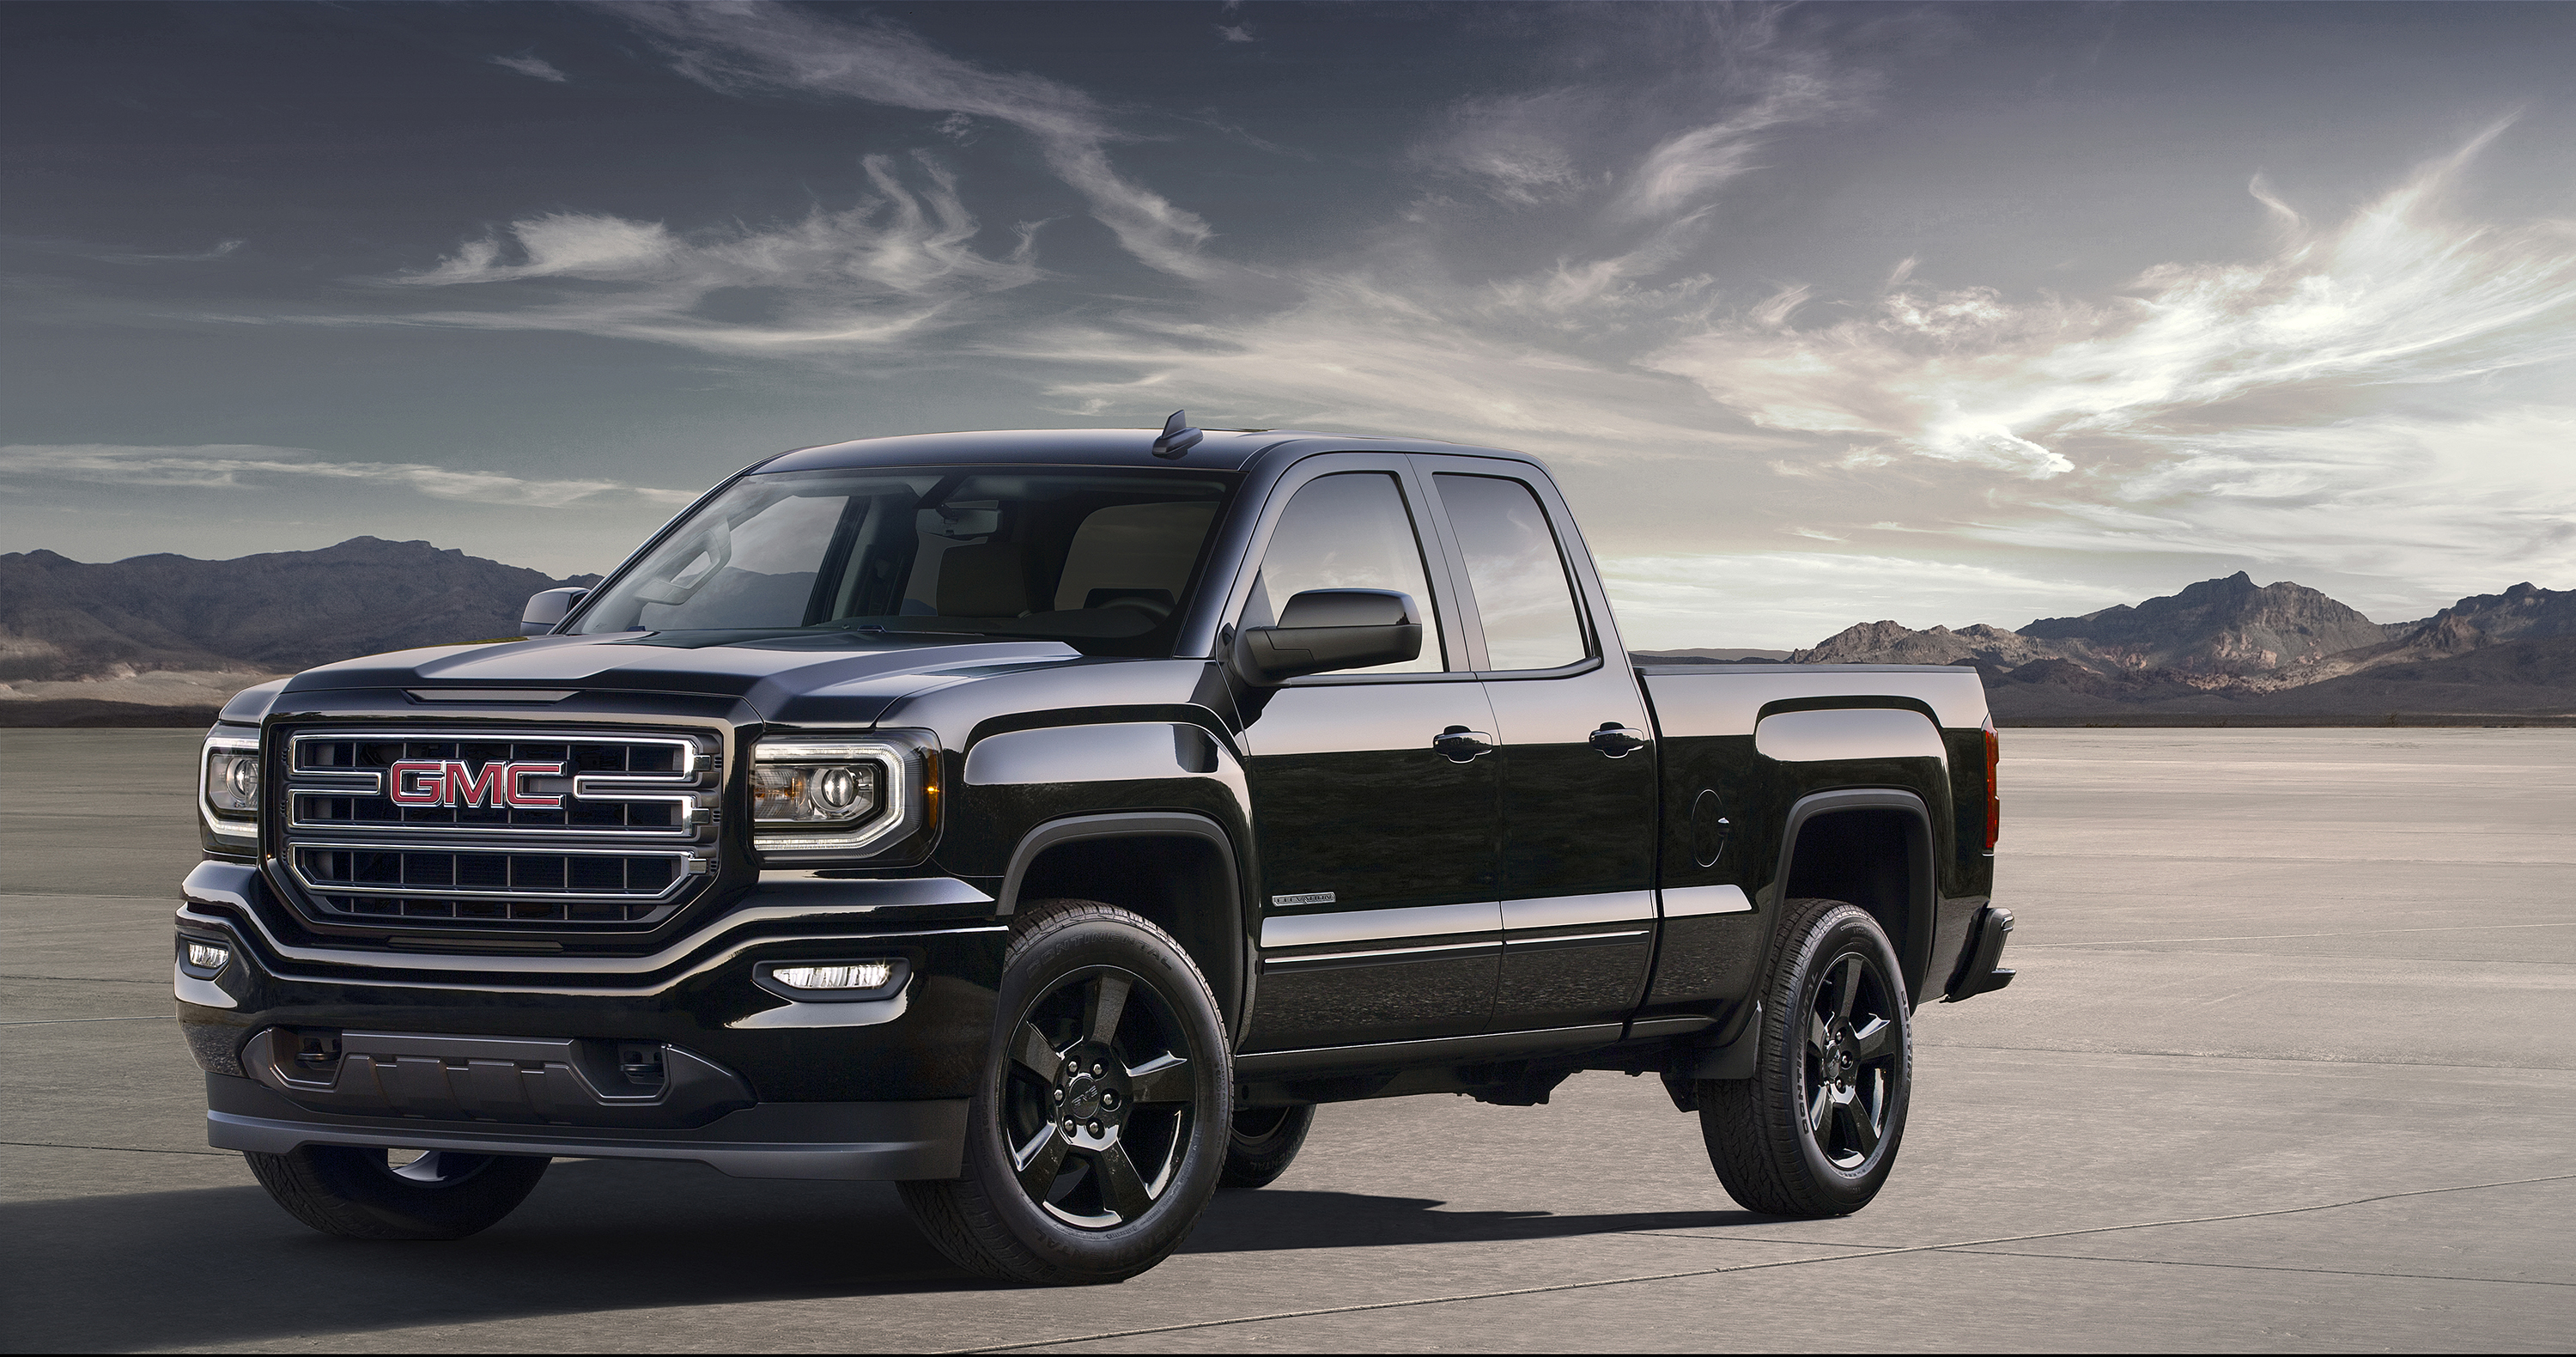 2016 Gmc Sierra Elevation Edition Is An Appropriate Pickup